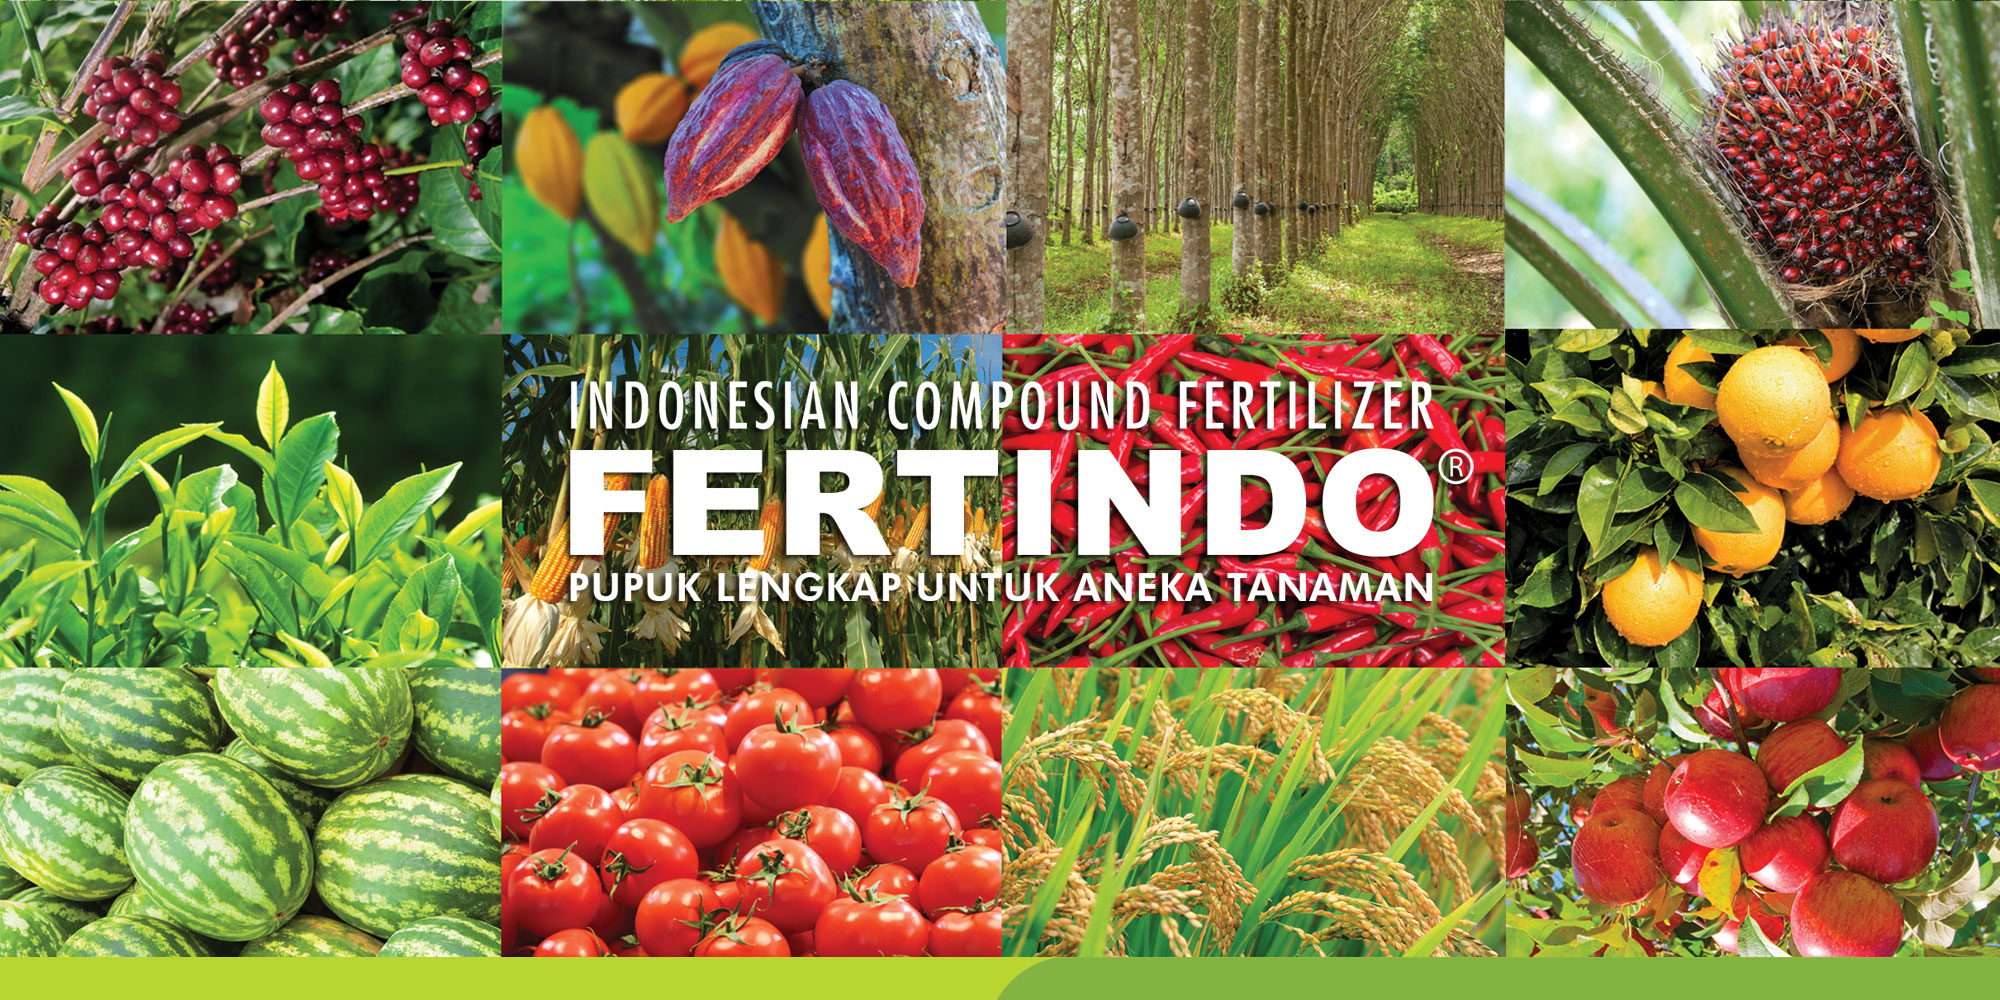 saraswanti product fertindo